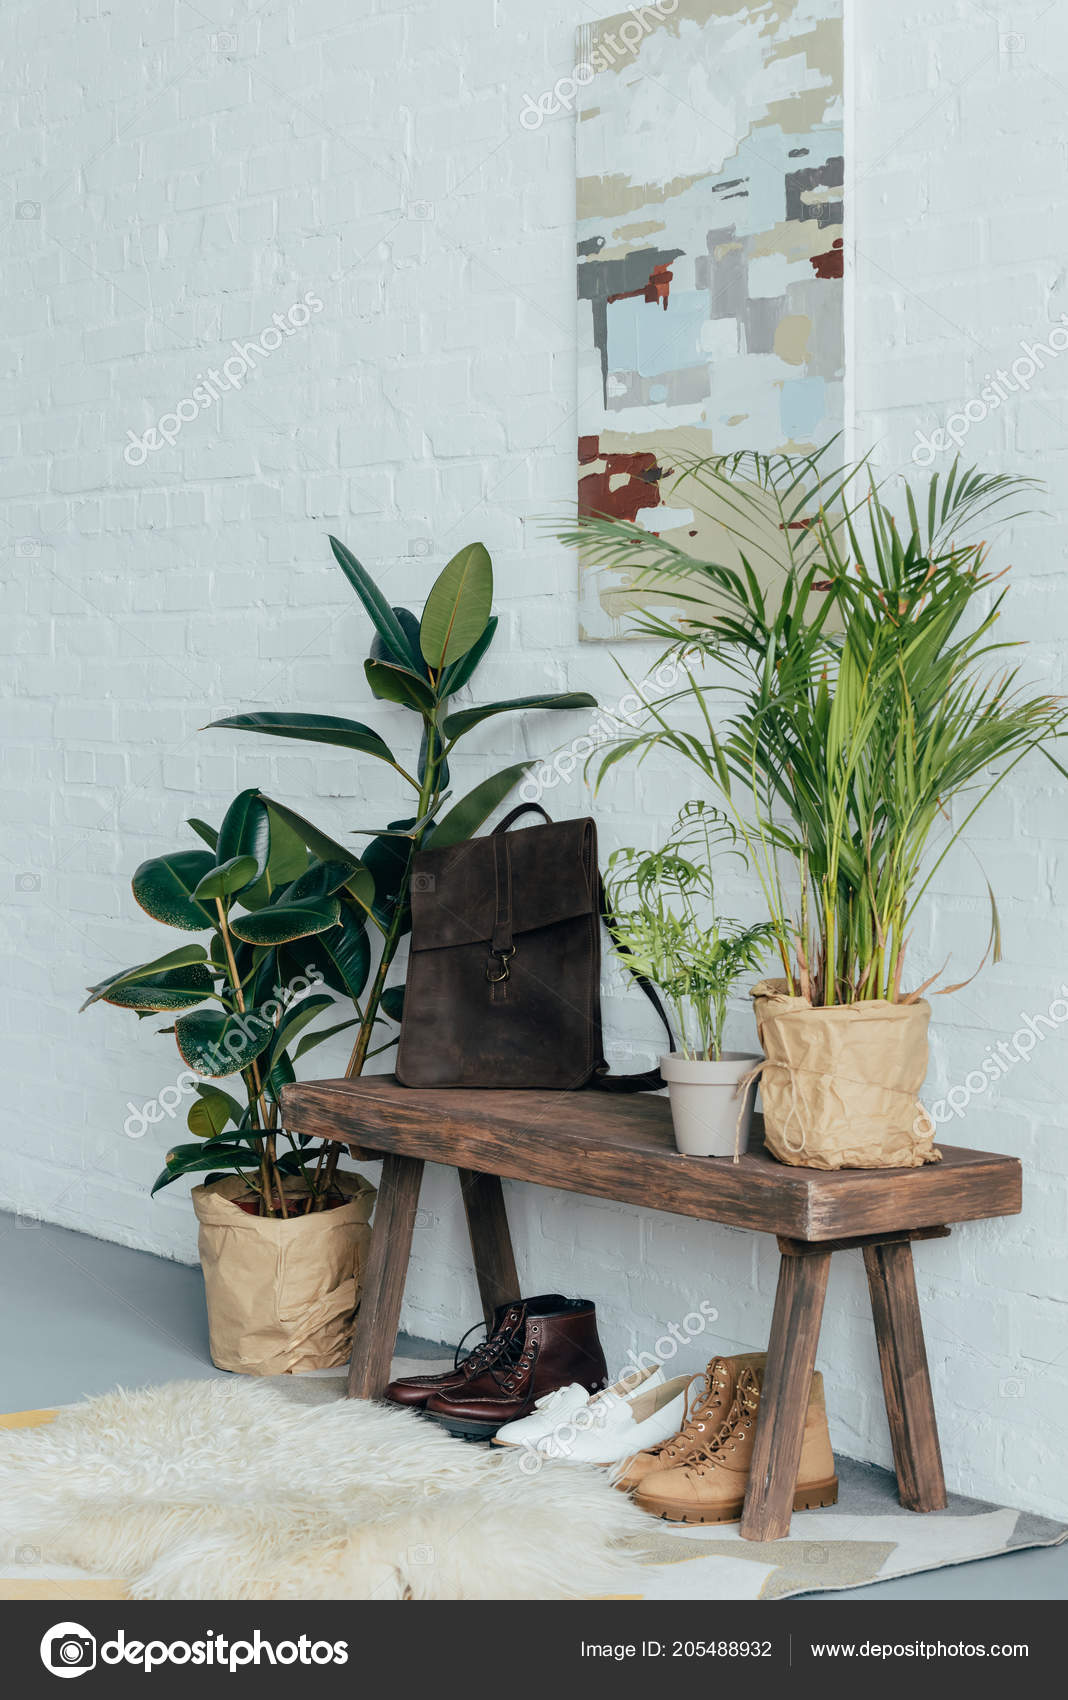 Fabulous Different Shoes Wooden Bench Corridor Potted Plants Floor Caraccident5 Cool Chair Designs And Ideas Caraccident5Info